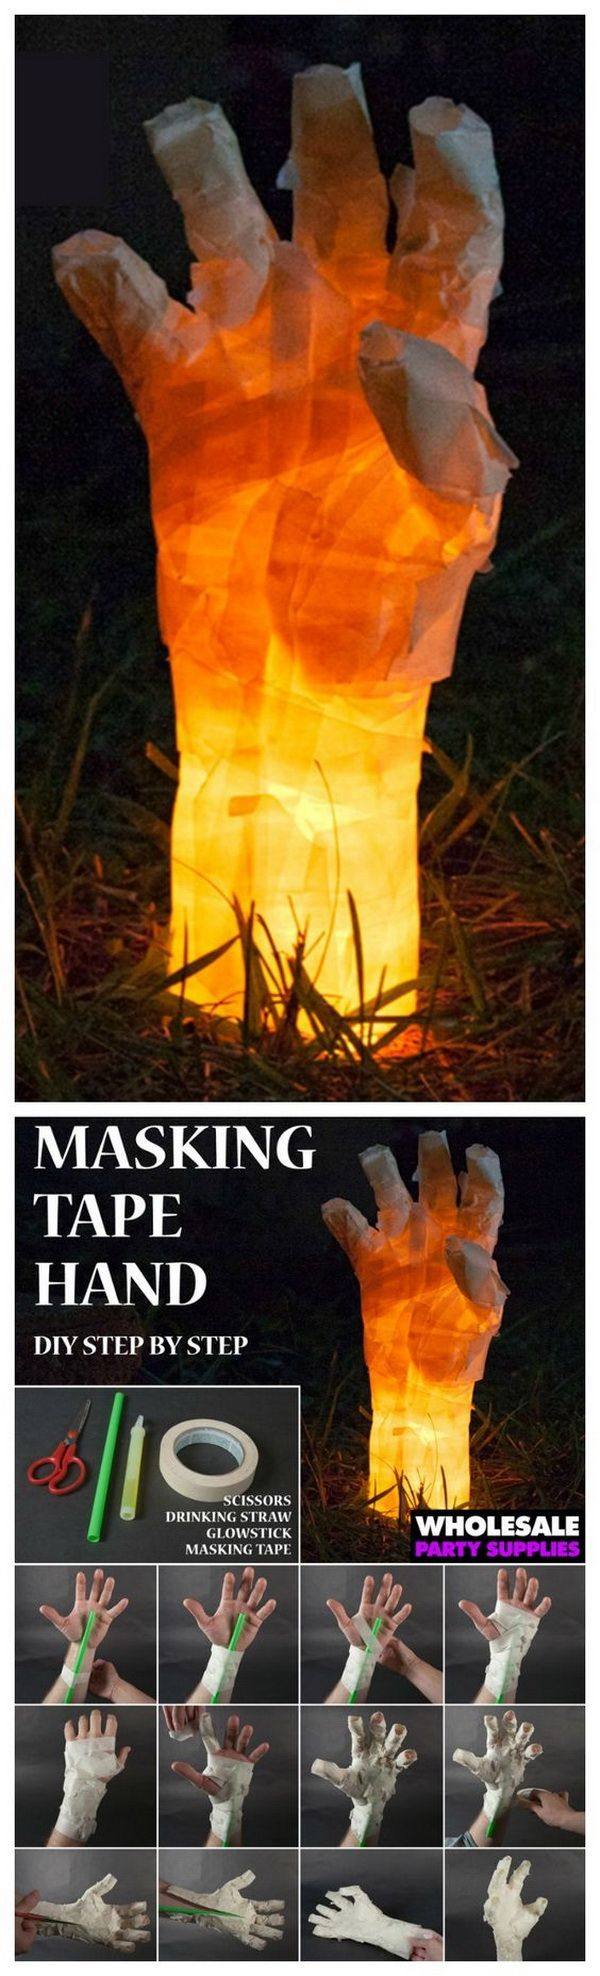 30+ Homemade Halloween Decoration Ideas Masking tape, Creepy and Dark - Homemade Halloween Decorations